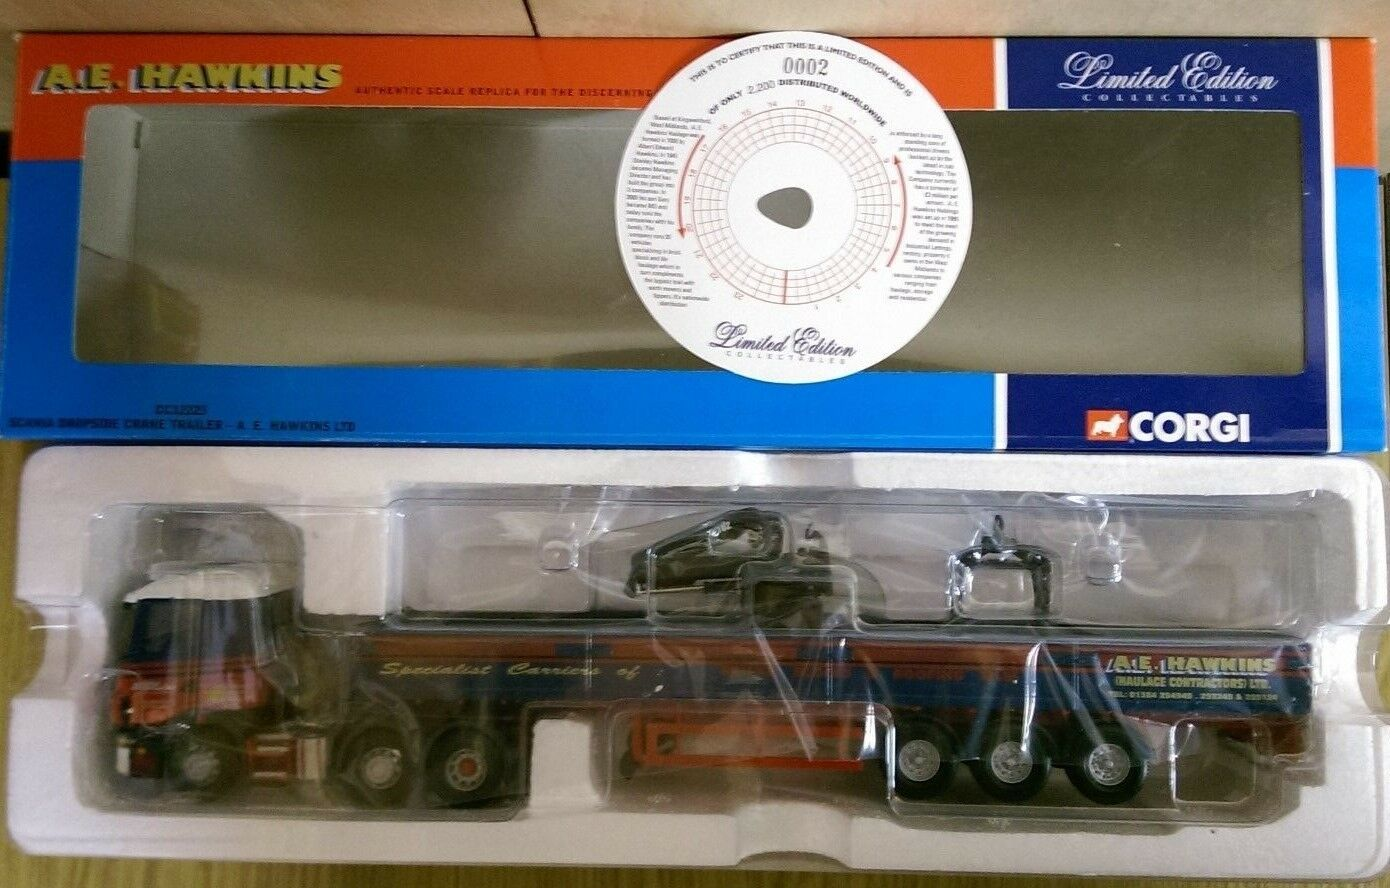 Corgi CC12223 Scania Dropside Crane Trailer A E Hawkins Ltd Ed. No. 0002 of 2200